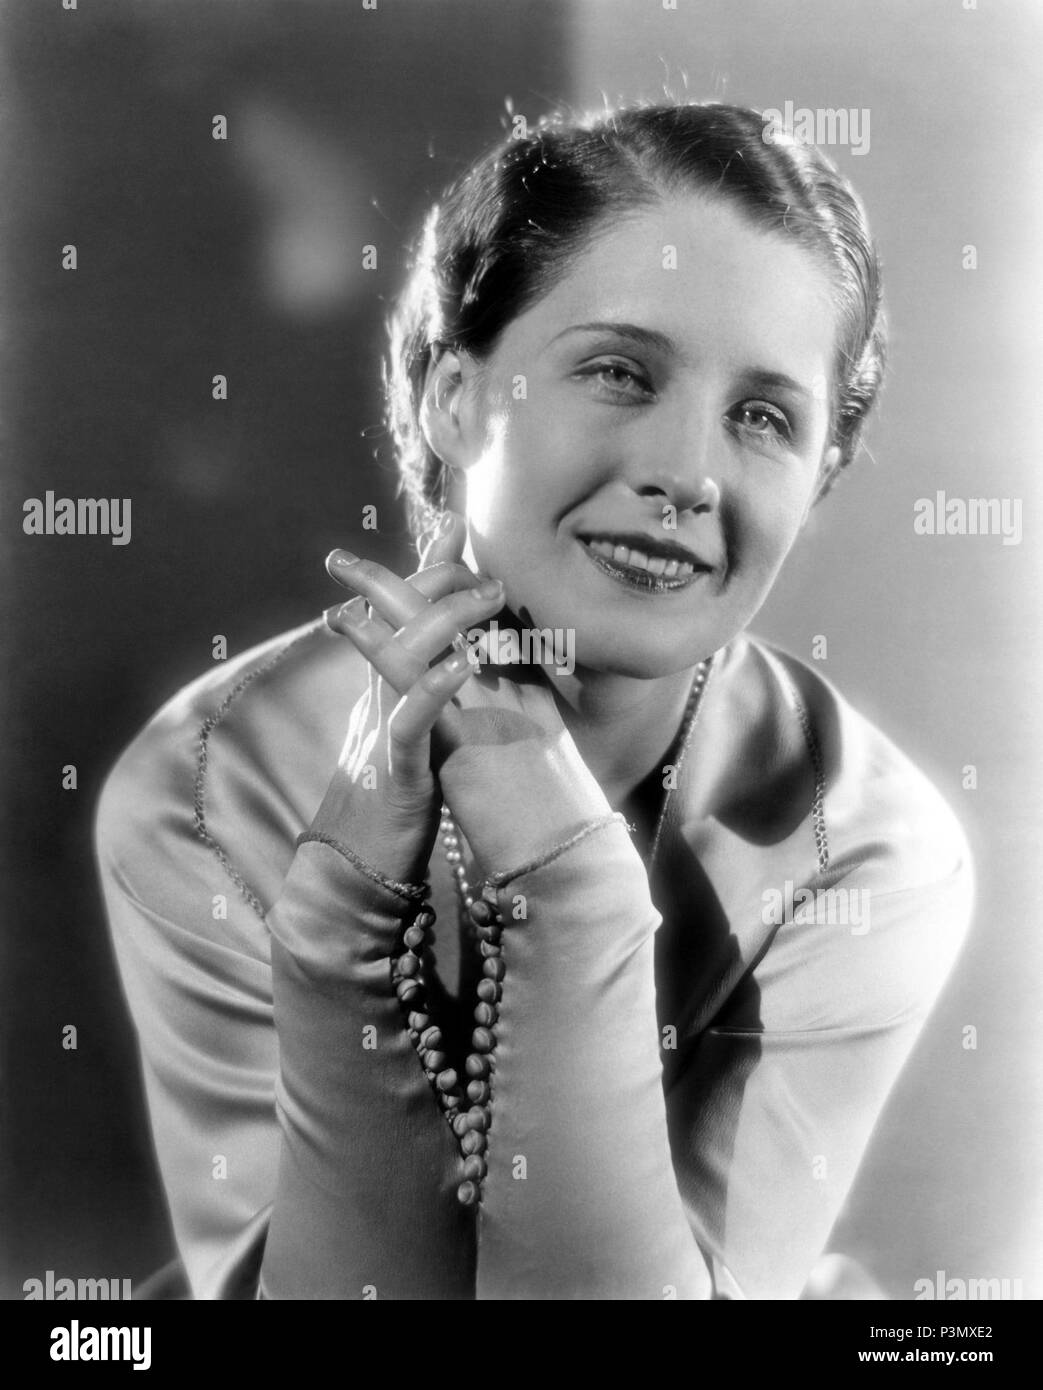 Discussion on this topic: Shalane McCall, norma-shearer/